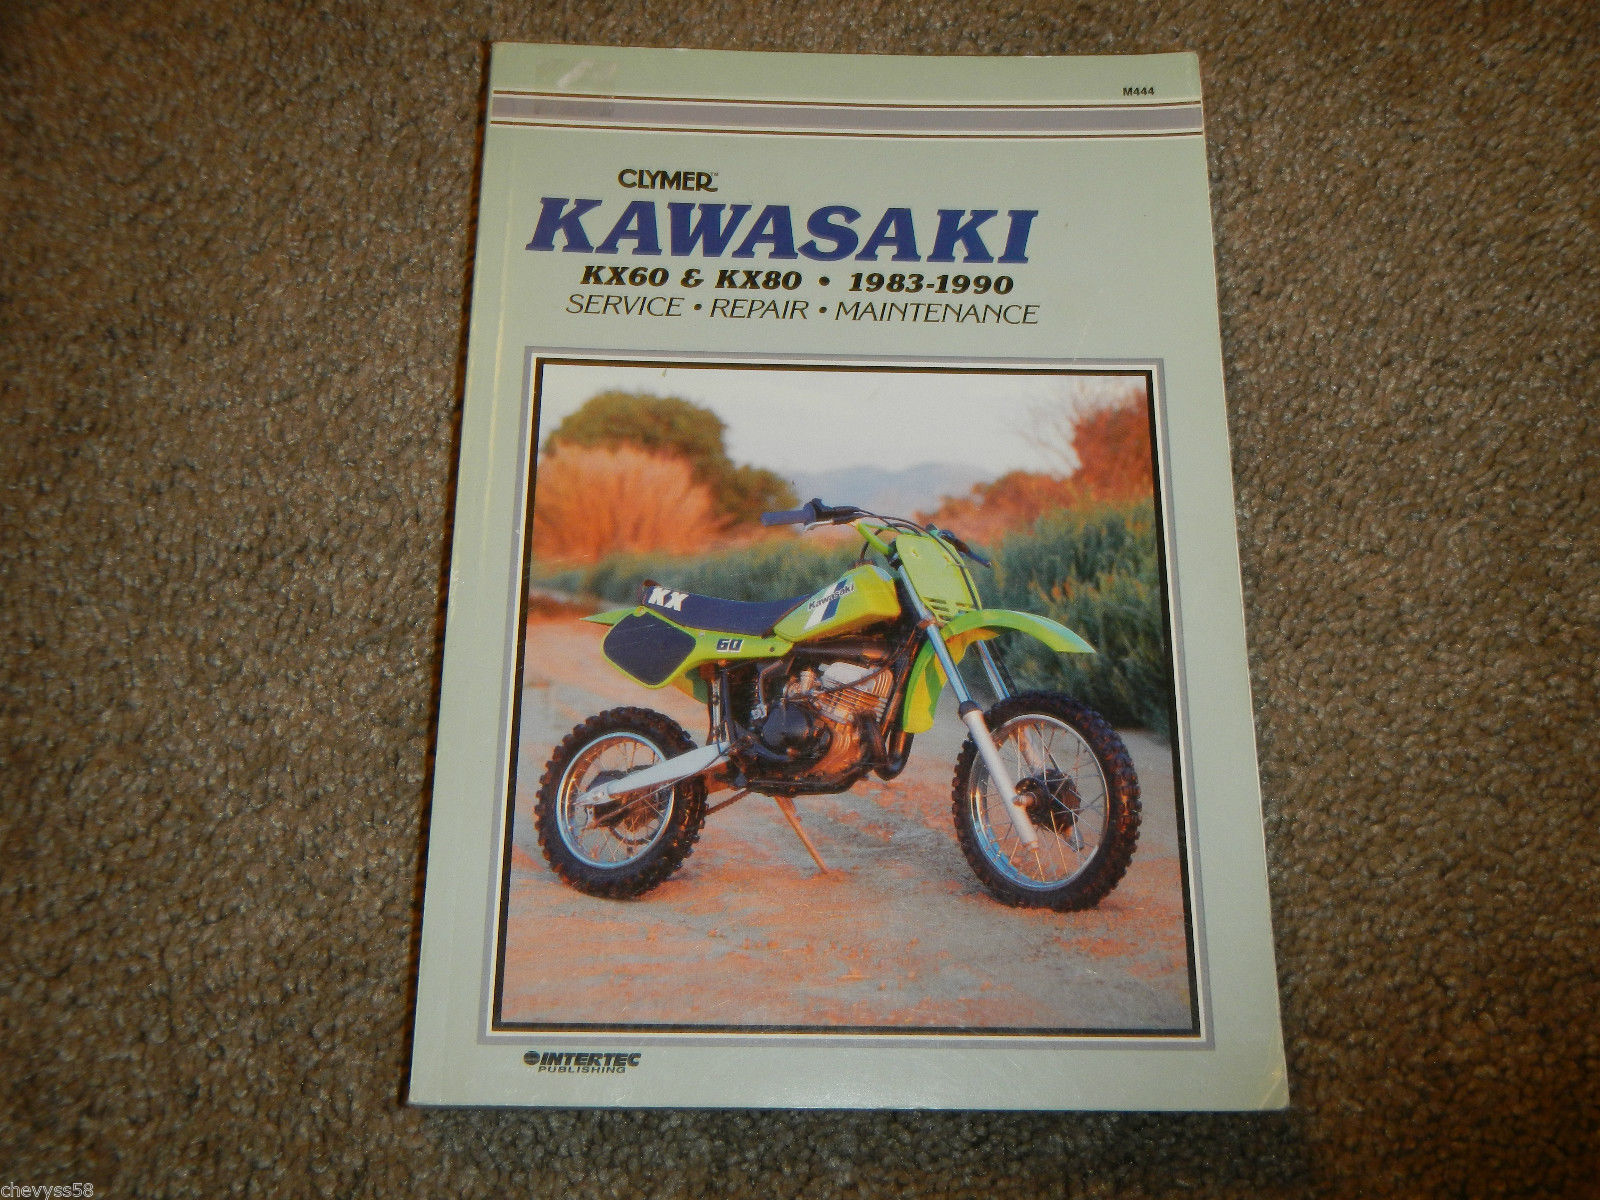 1983-1990 KAWASAKI KX60 KX80 CLYMER MOTORCYCLE SHOP SERVICE REPAIR MANUAL